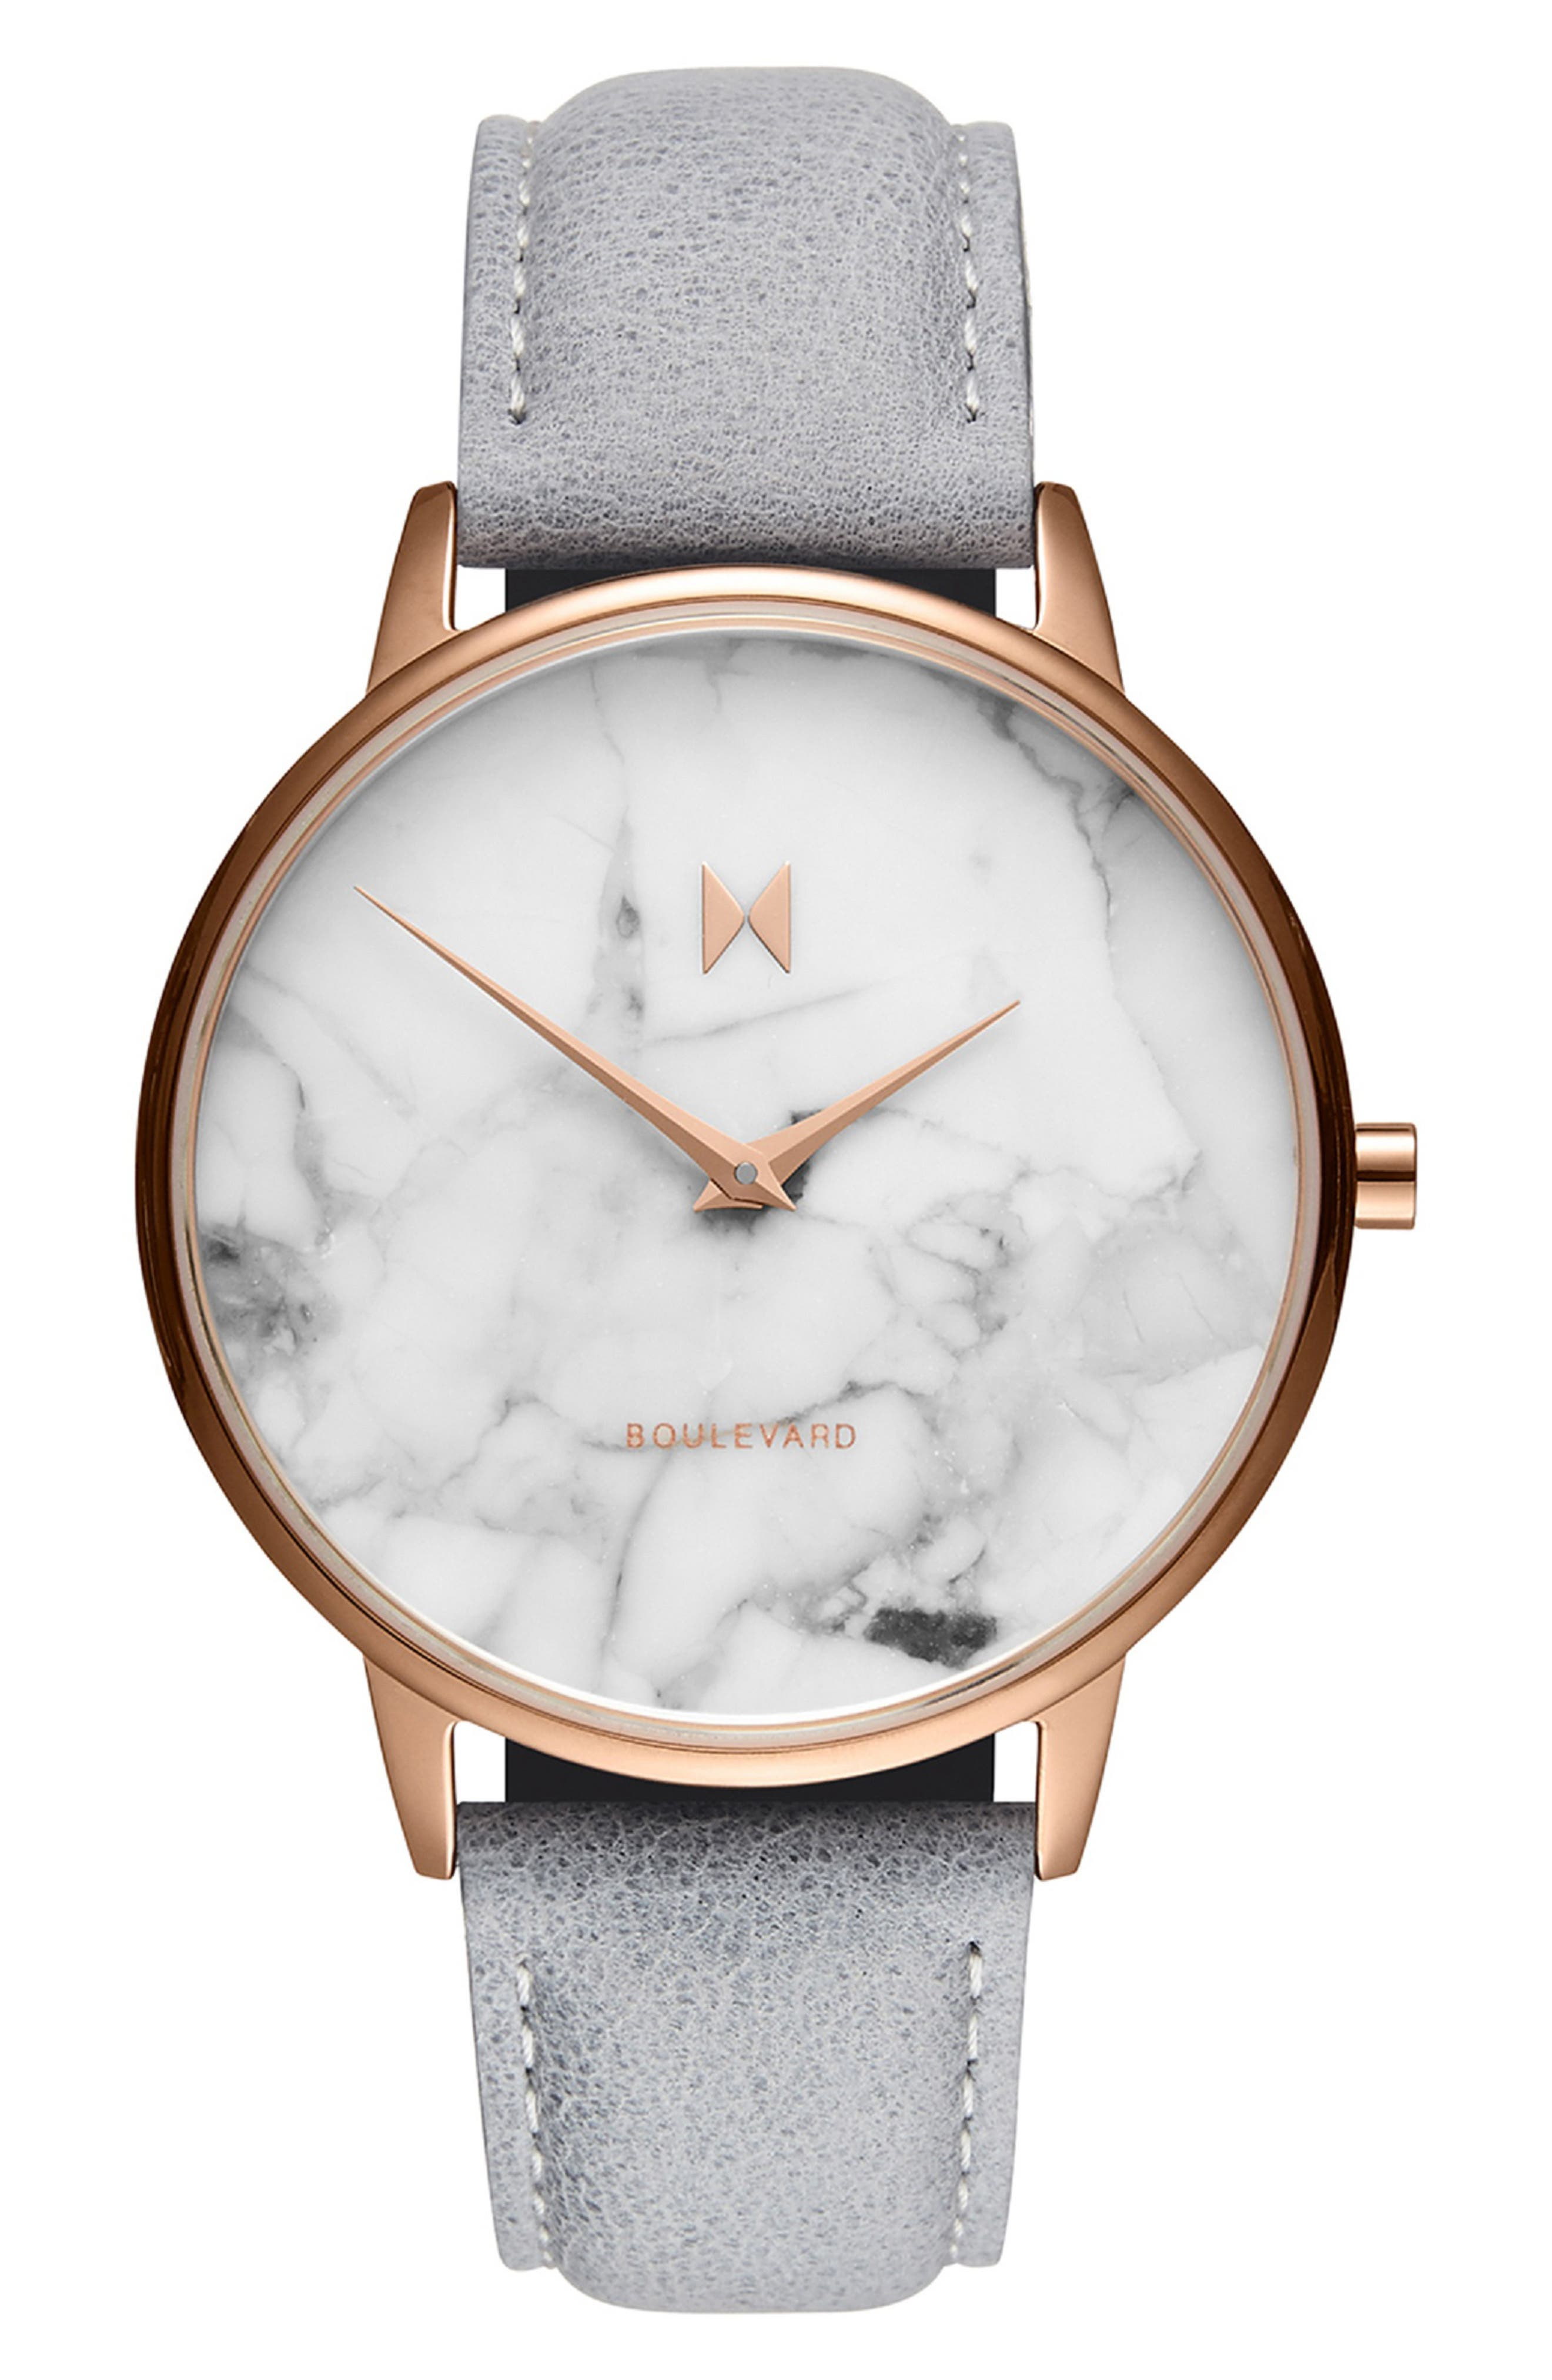 MVMT, Boulevard Leather Strap Watch, 38mm, Main thumbnail 1, color, GREY/ WHITE MARBLE/ ROSE GOLD